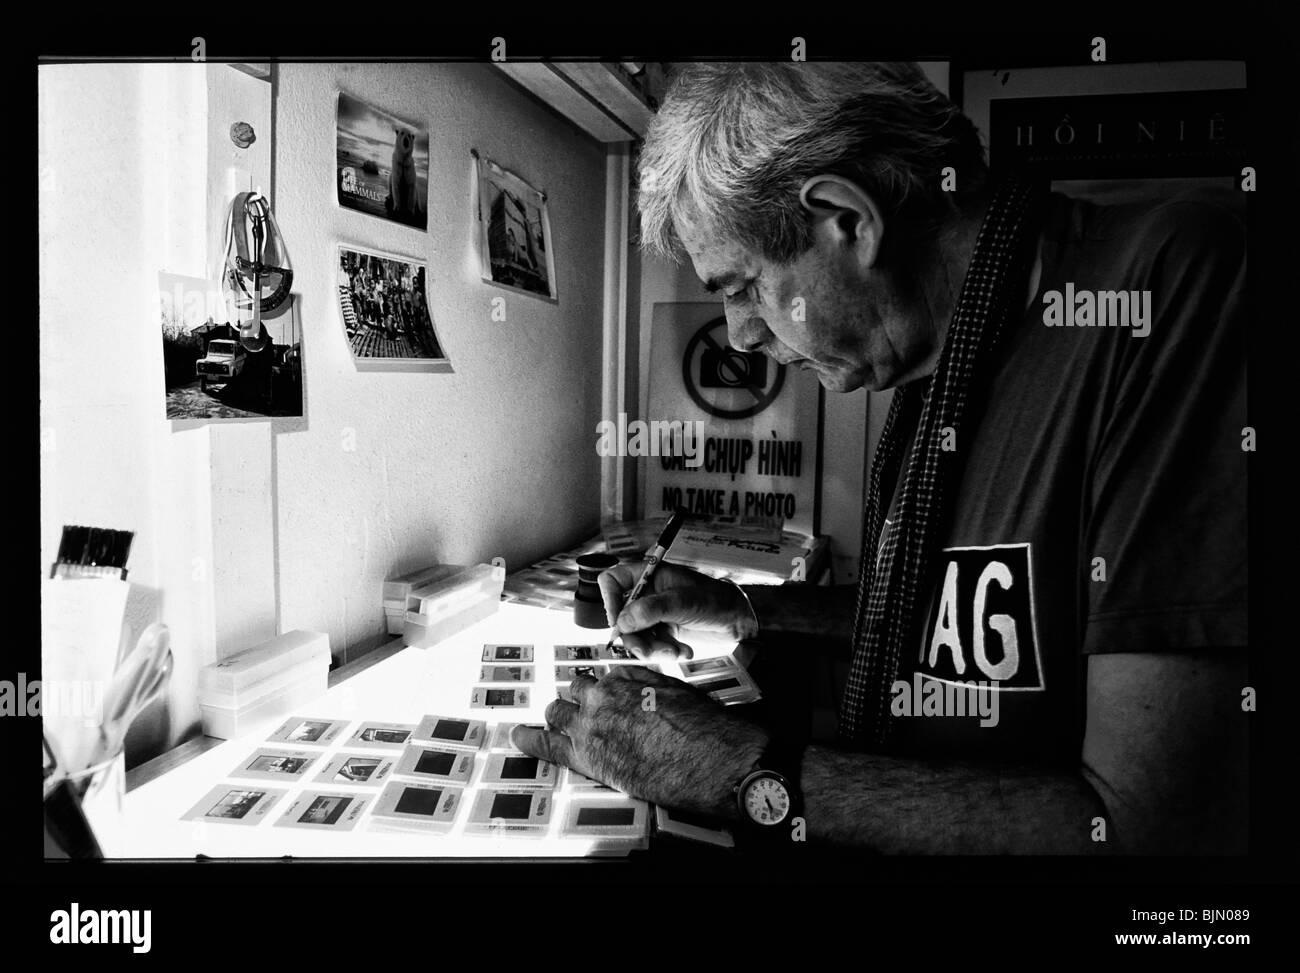 Conflict photographer Tim Page at his home in Brisbane, Australia - Stock Image